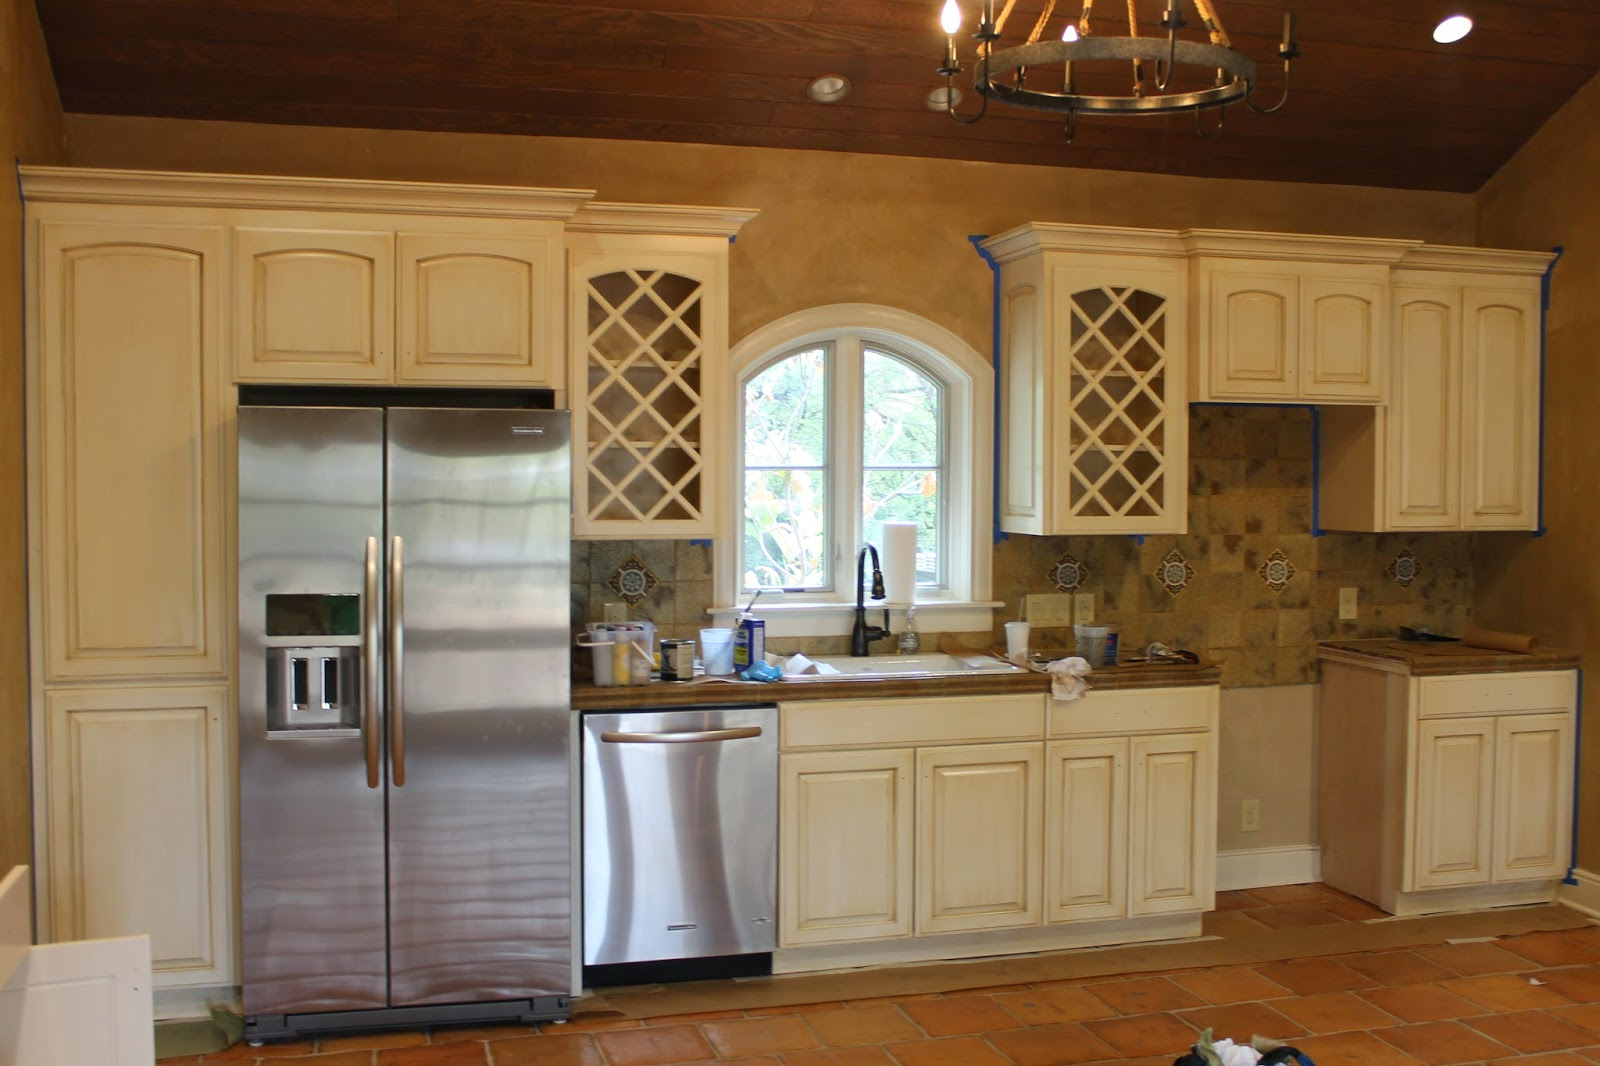 java maple cabinets, wood stain for maple umber cabinets, java glaze cabinets, beautiful kithen umber stained cabinets, on umber glaze for kitchen cabinets